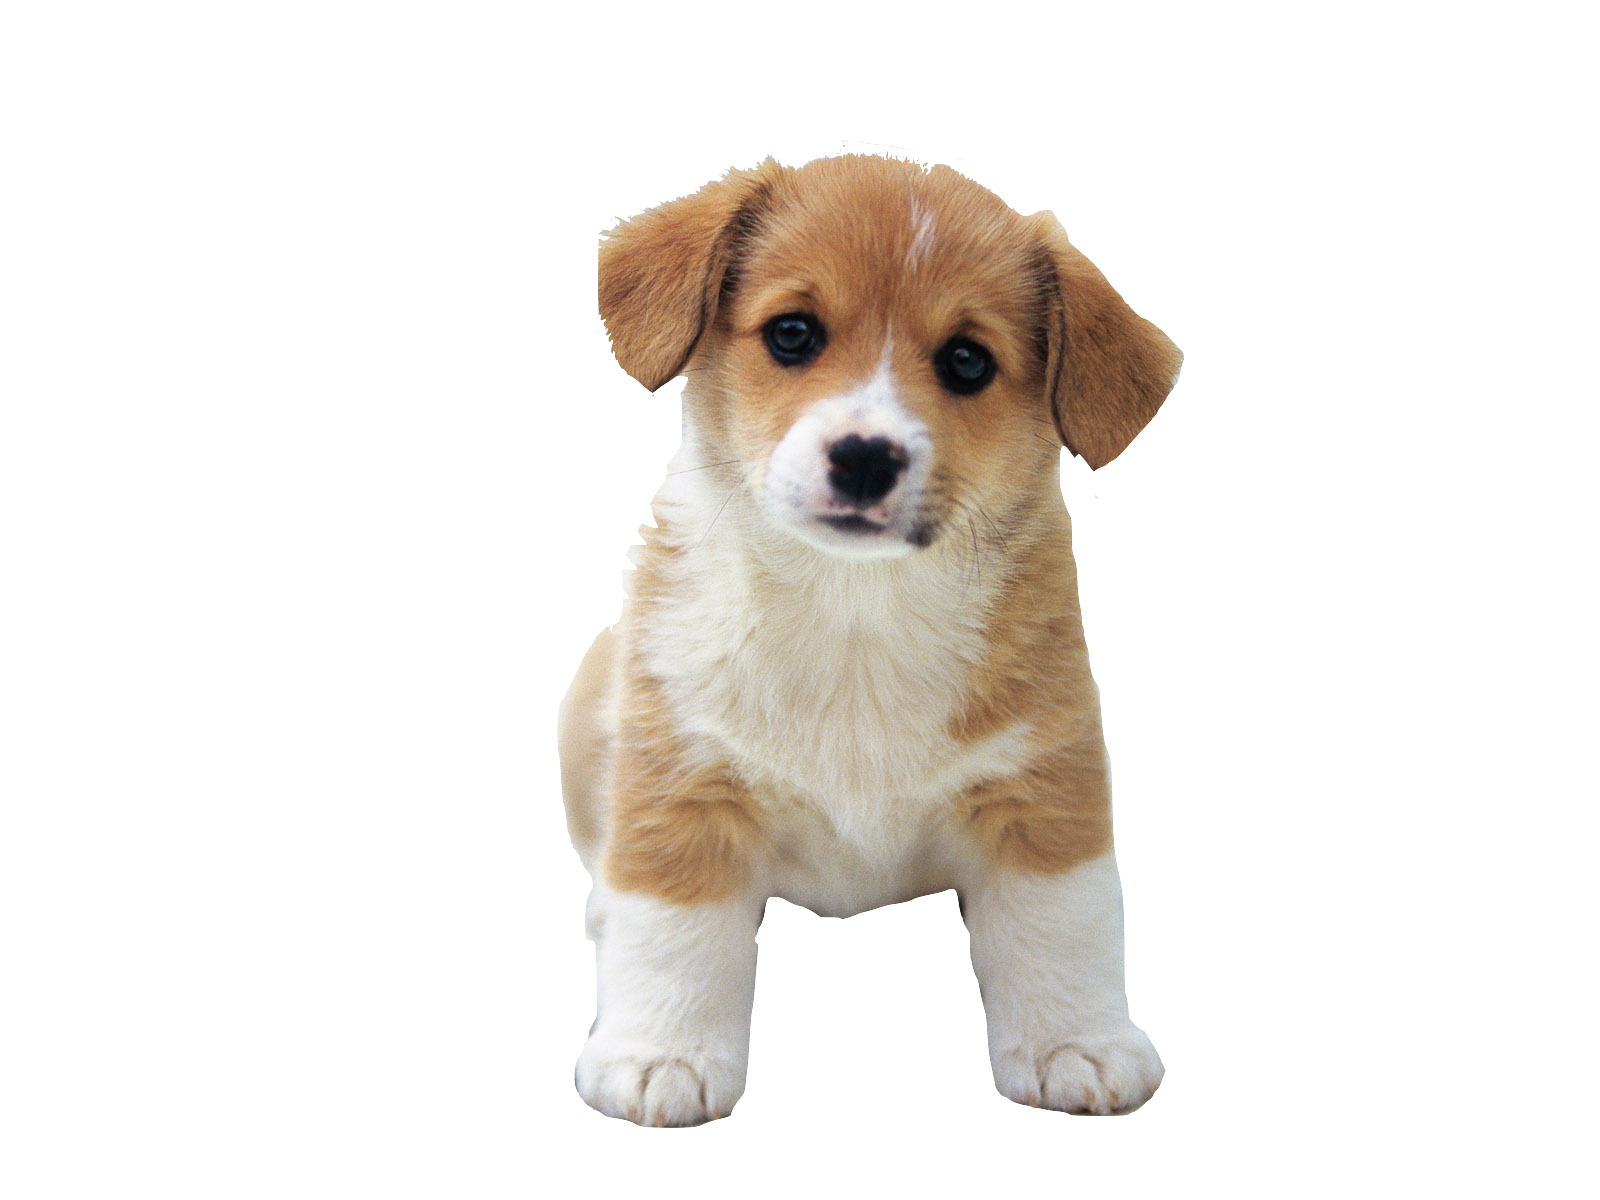 PNG Puppy Dog - 62191